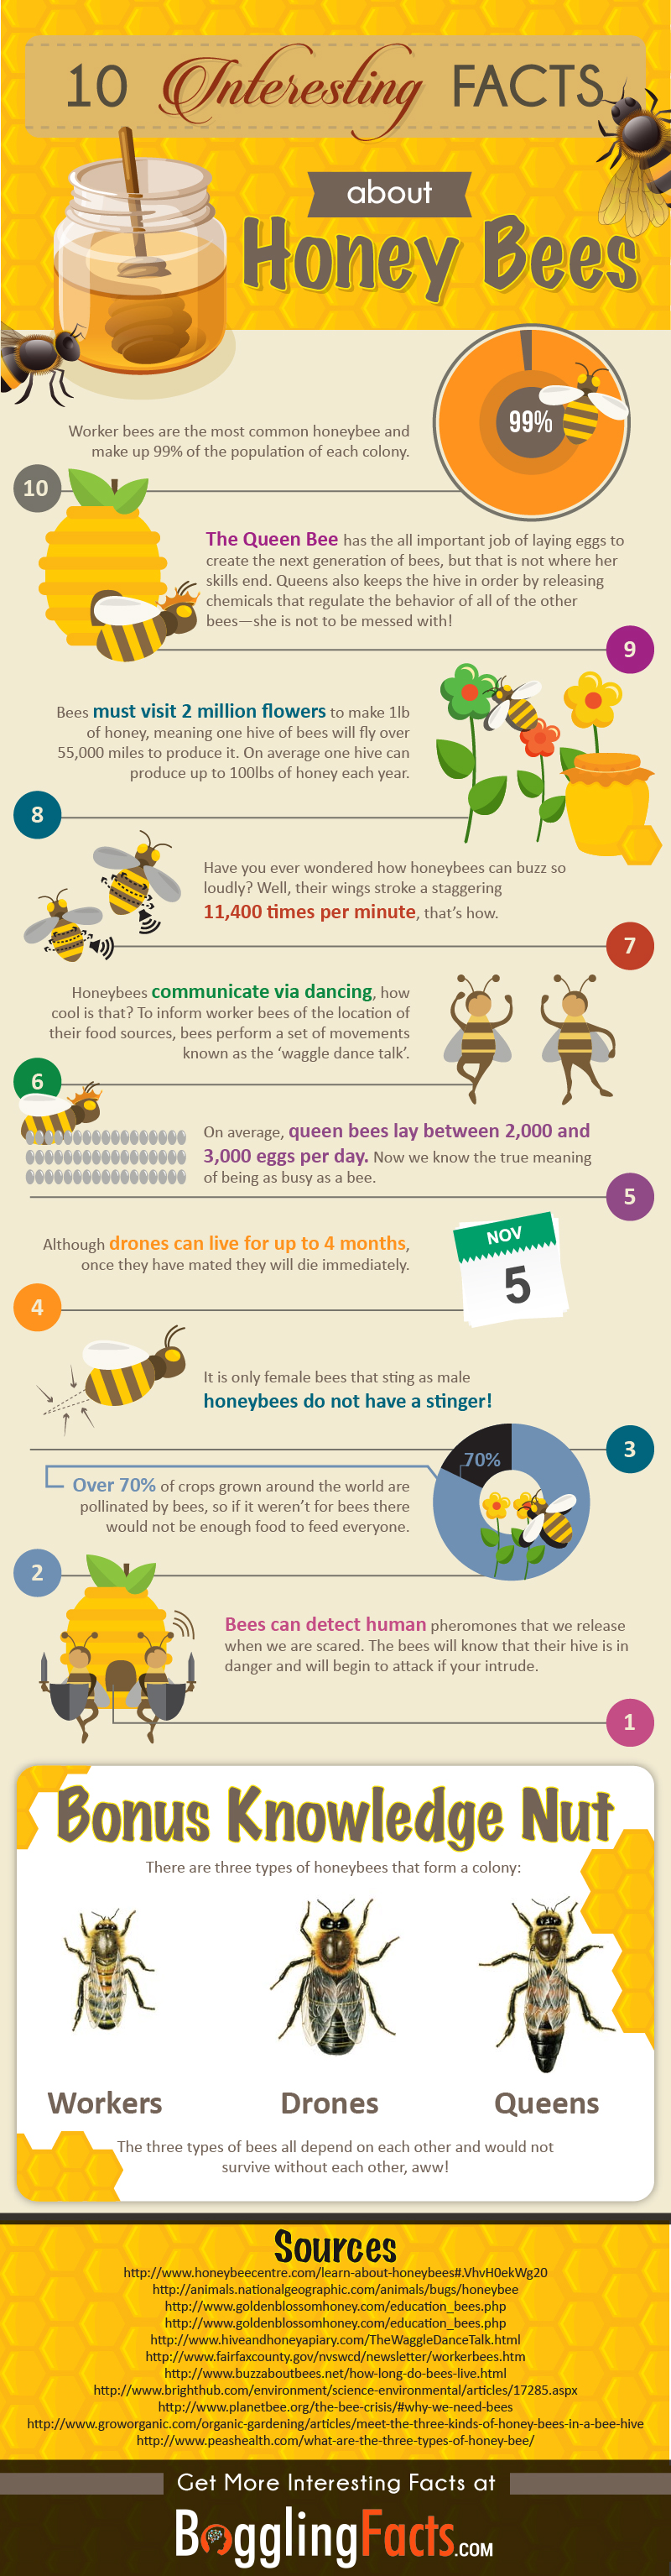 10 Fascinating Honey Bee Facts You Didn't Know [Infographic]